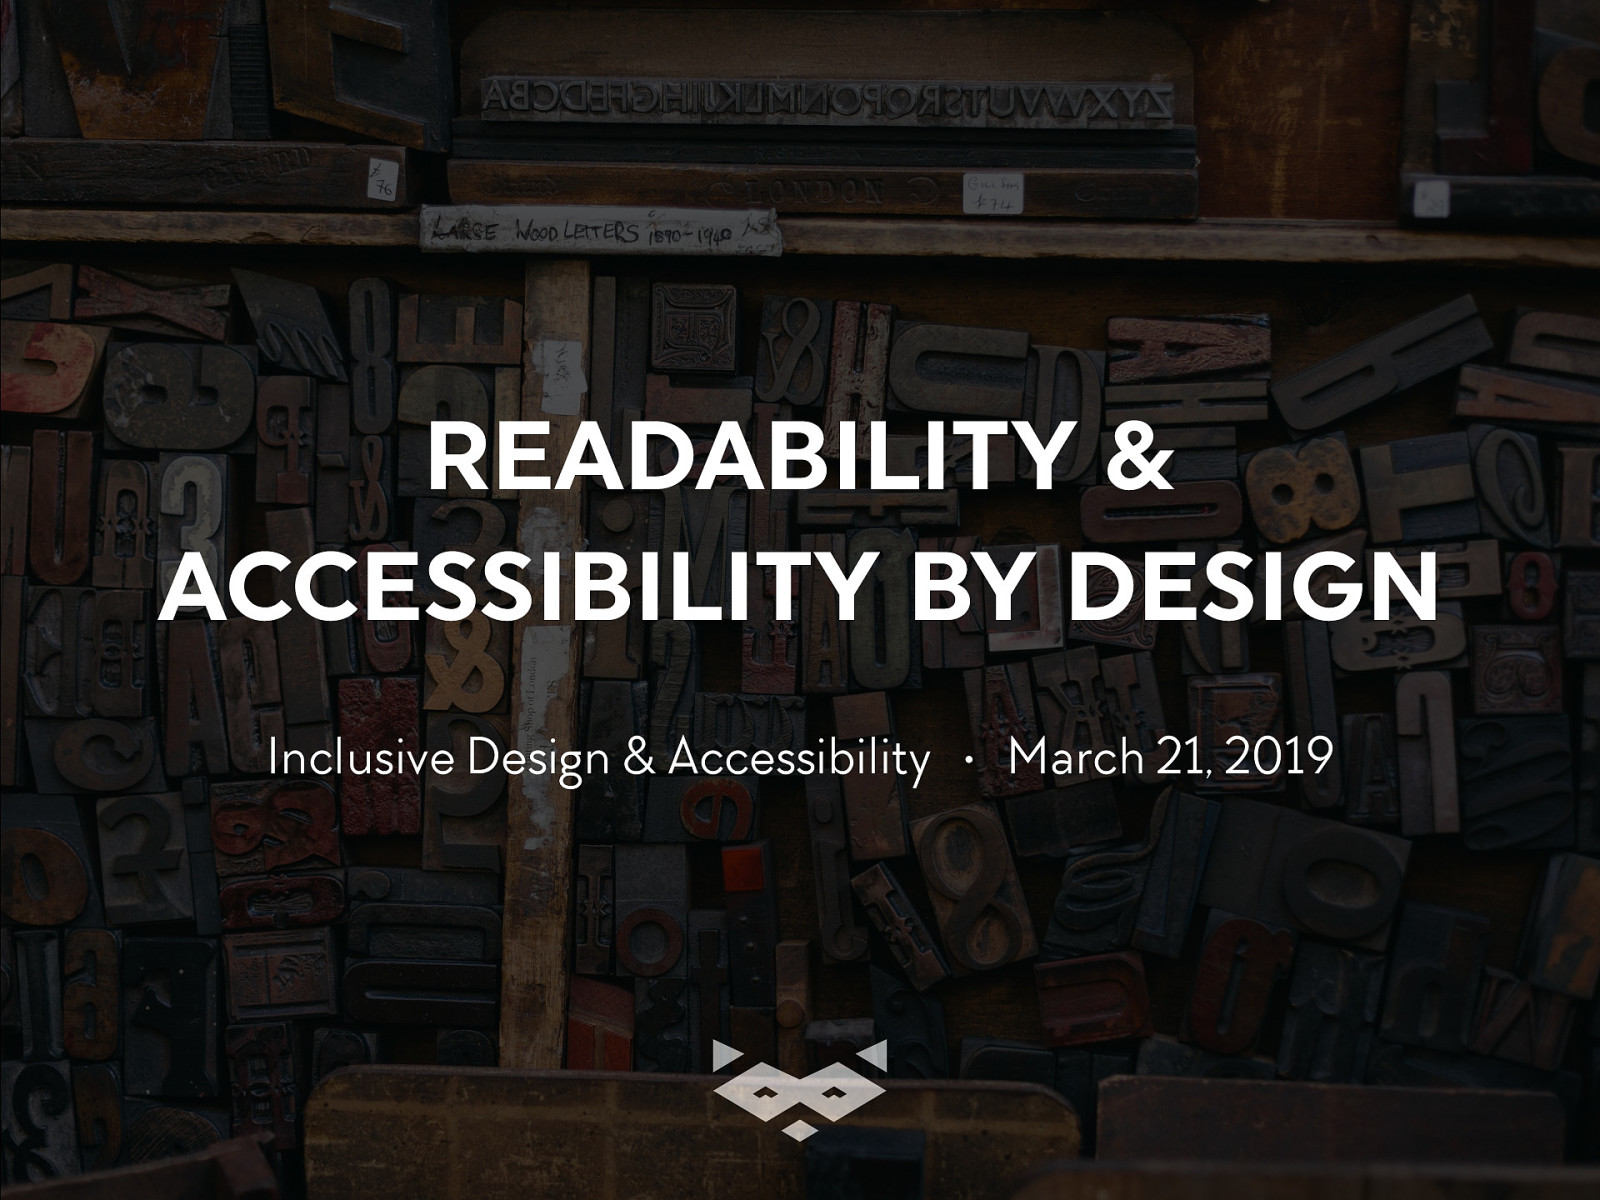 Readability & Accessibility by design